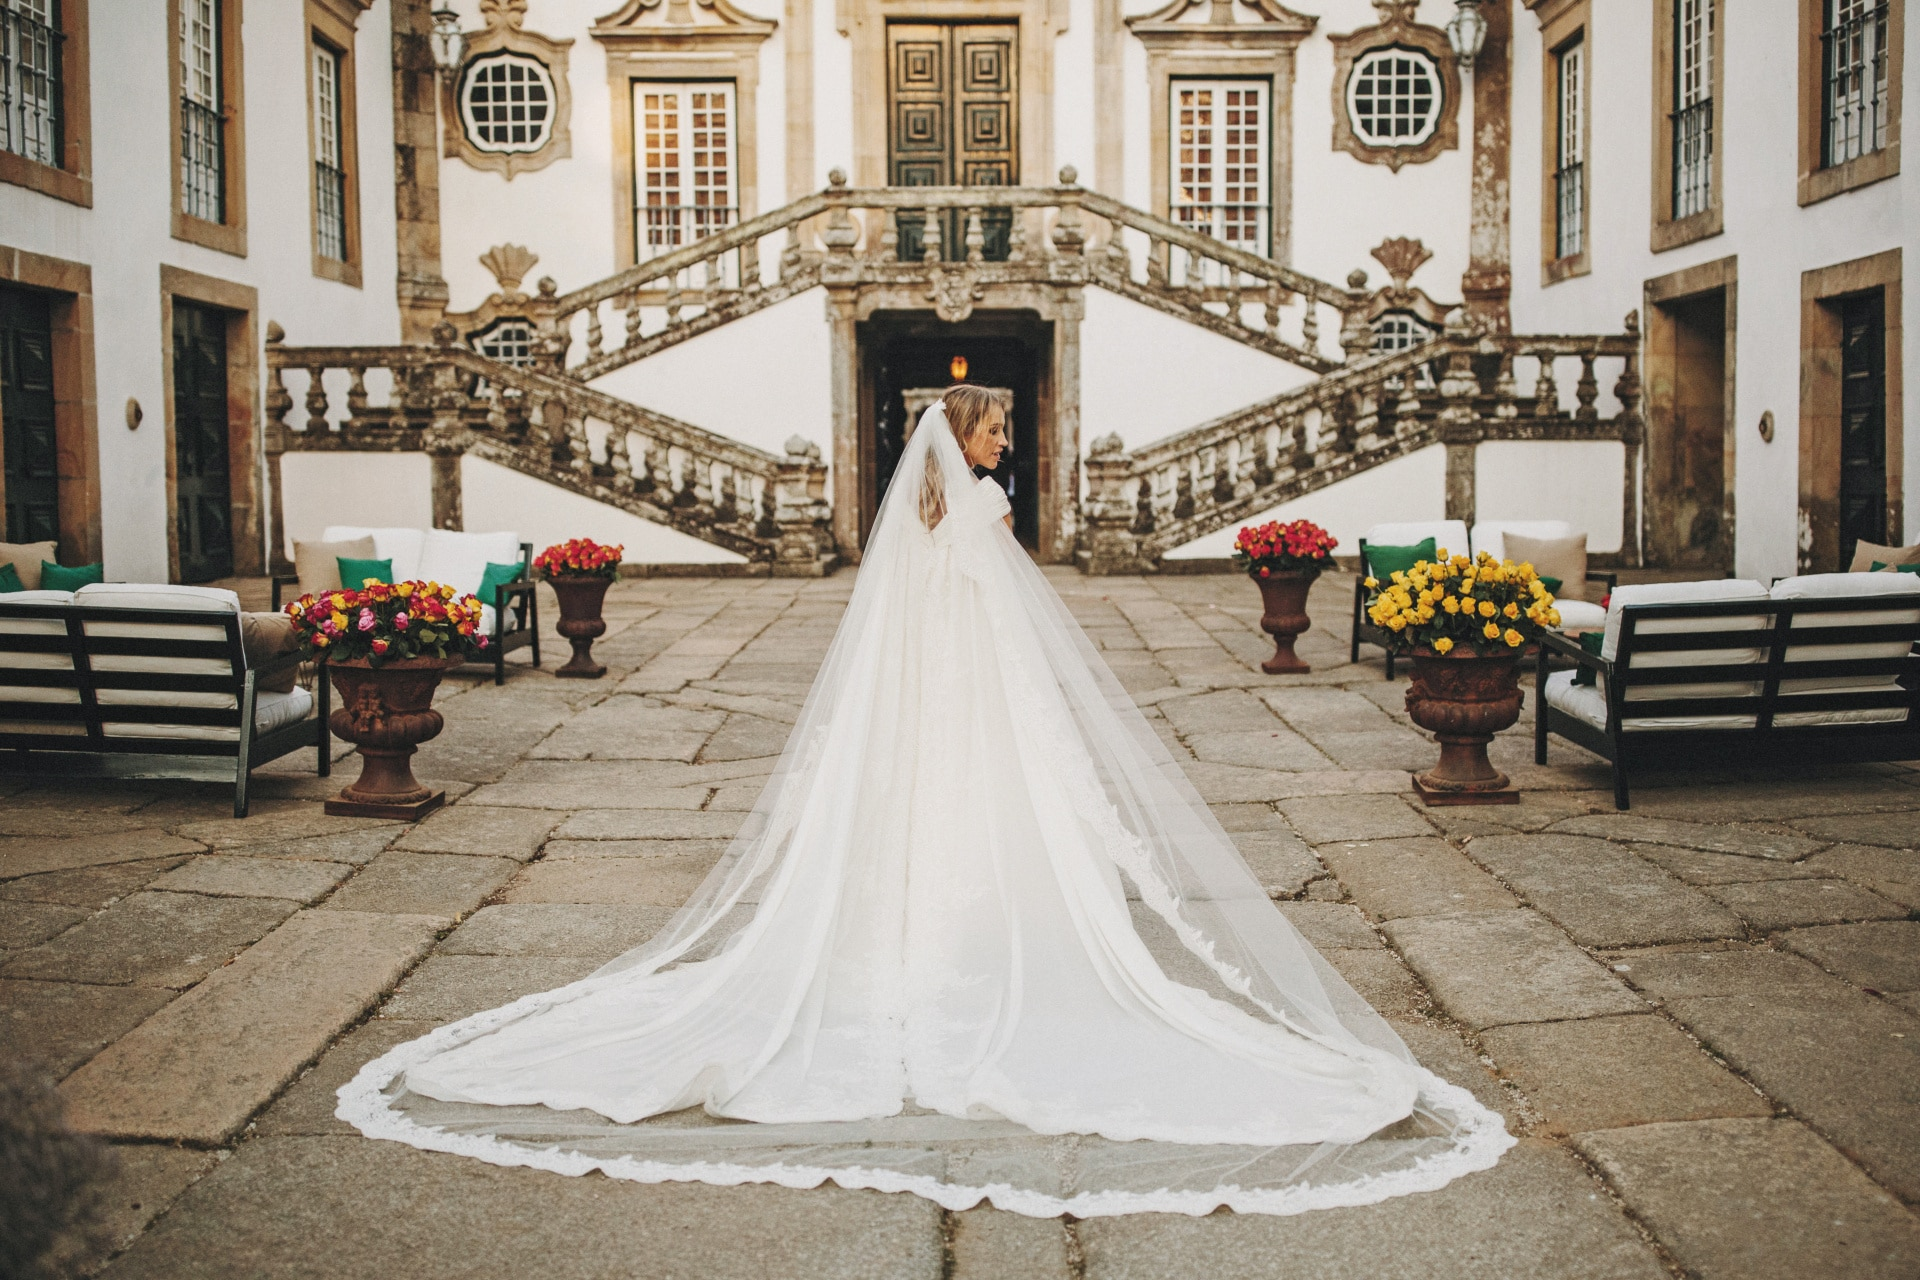 Inside a fashion designer's Portugal wedding